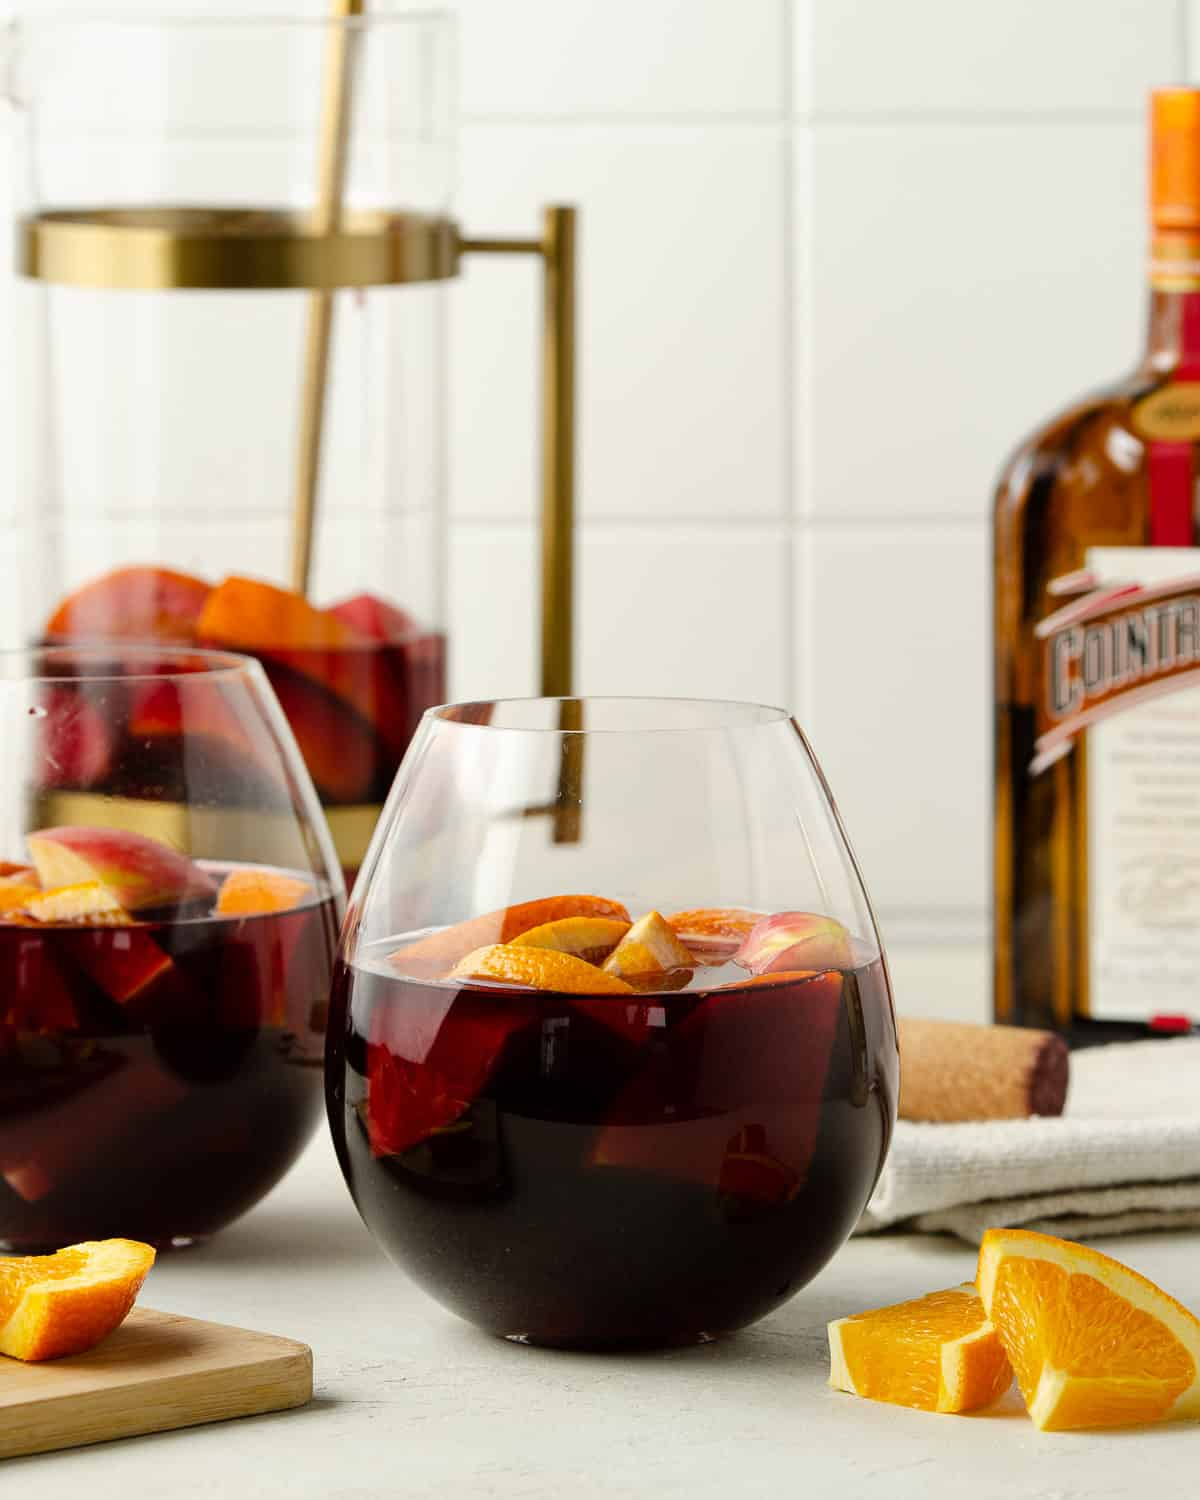 Two glasses of red wine sangria with a bottle in the back.